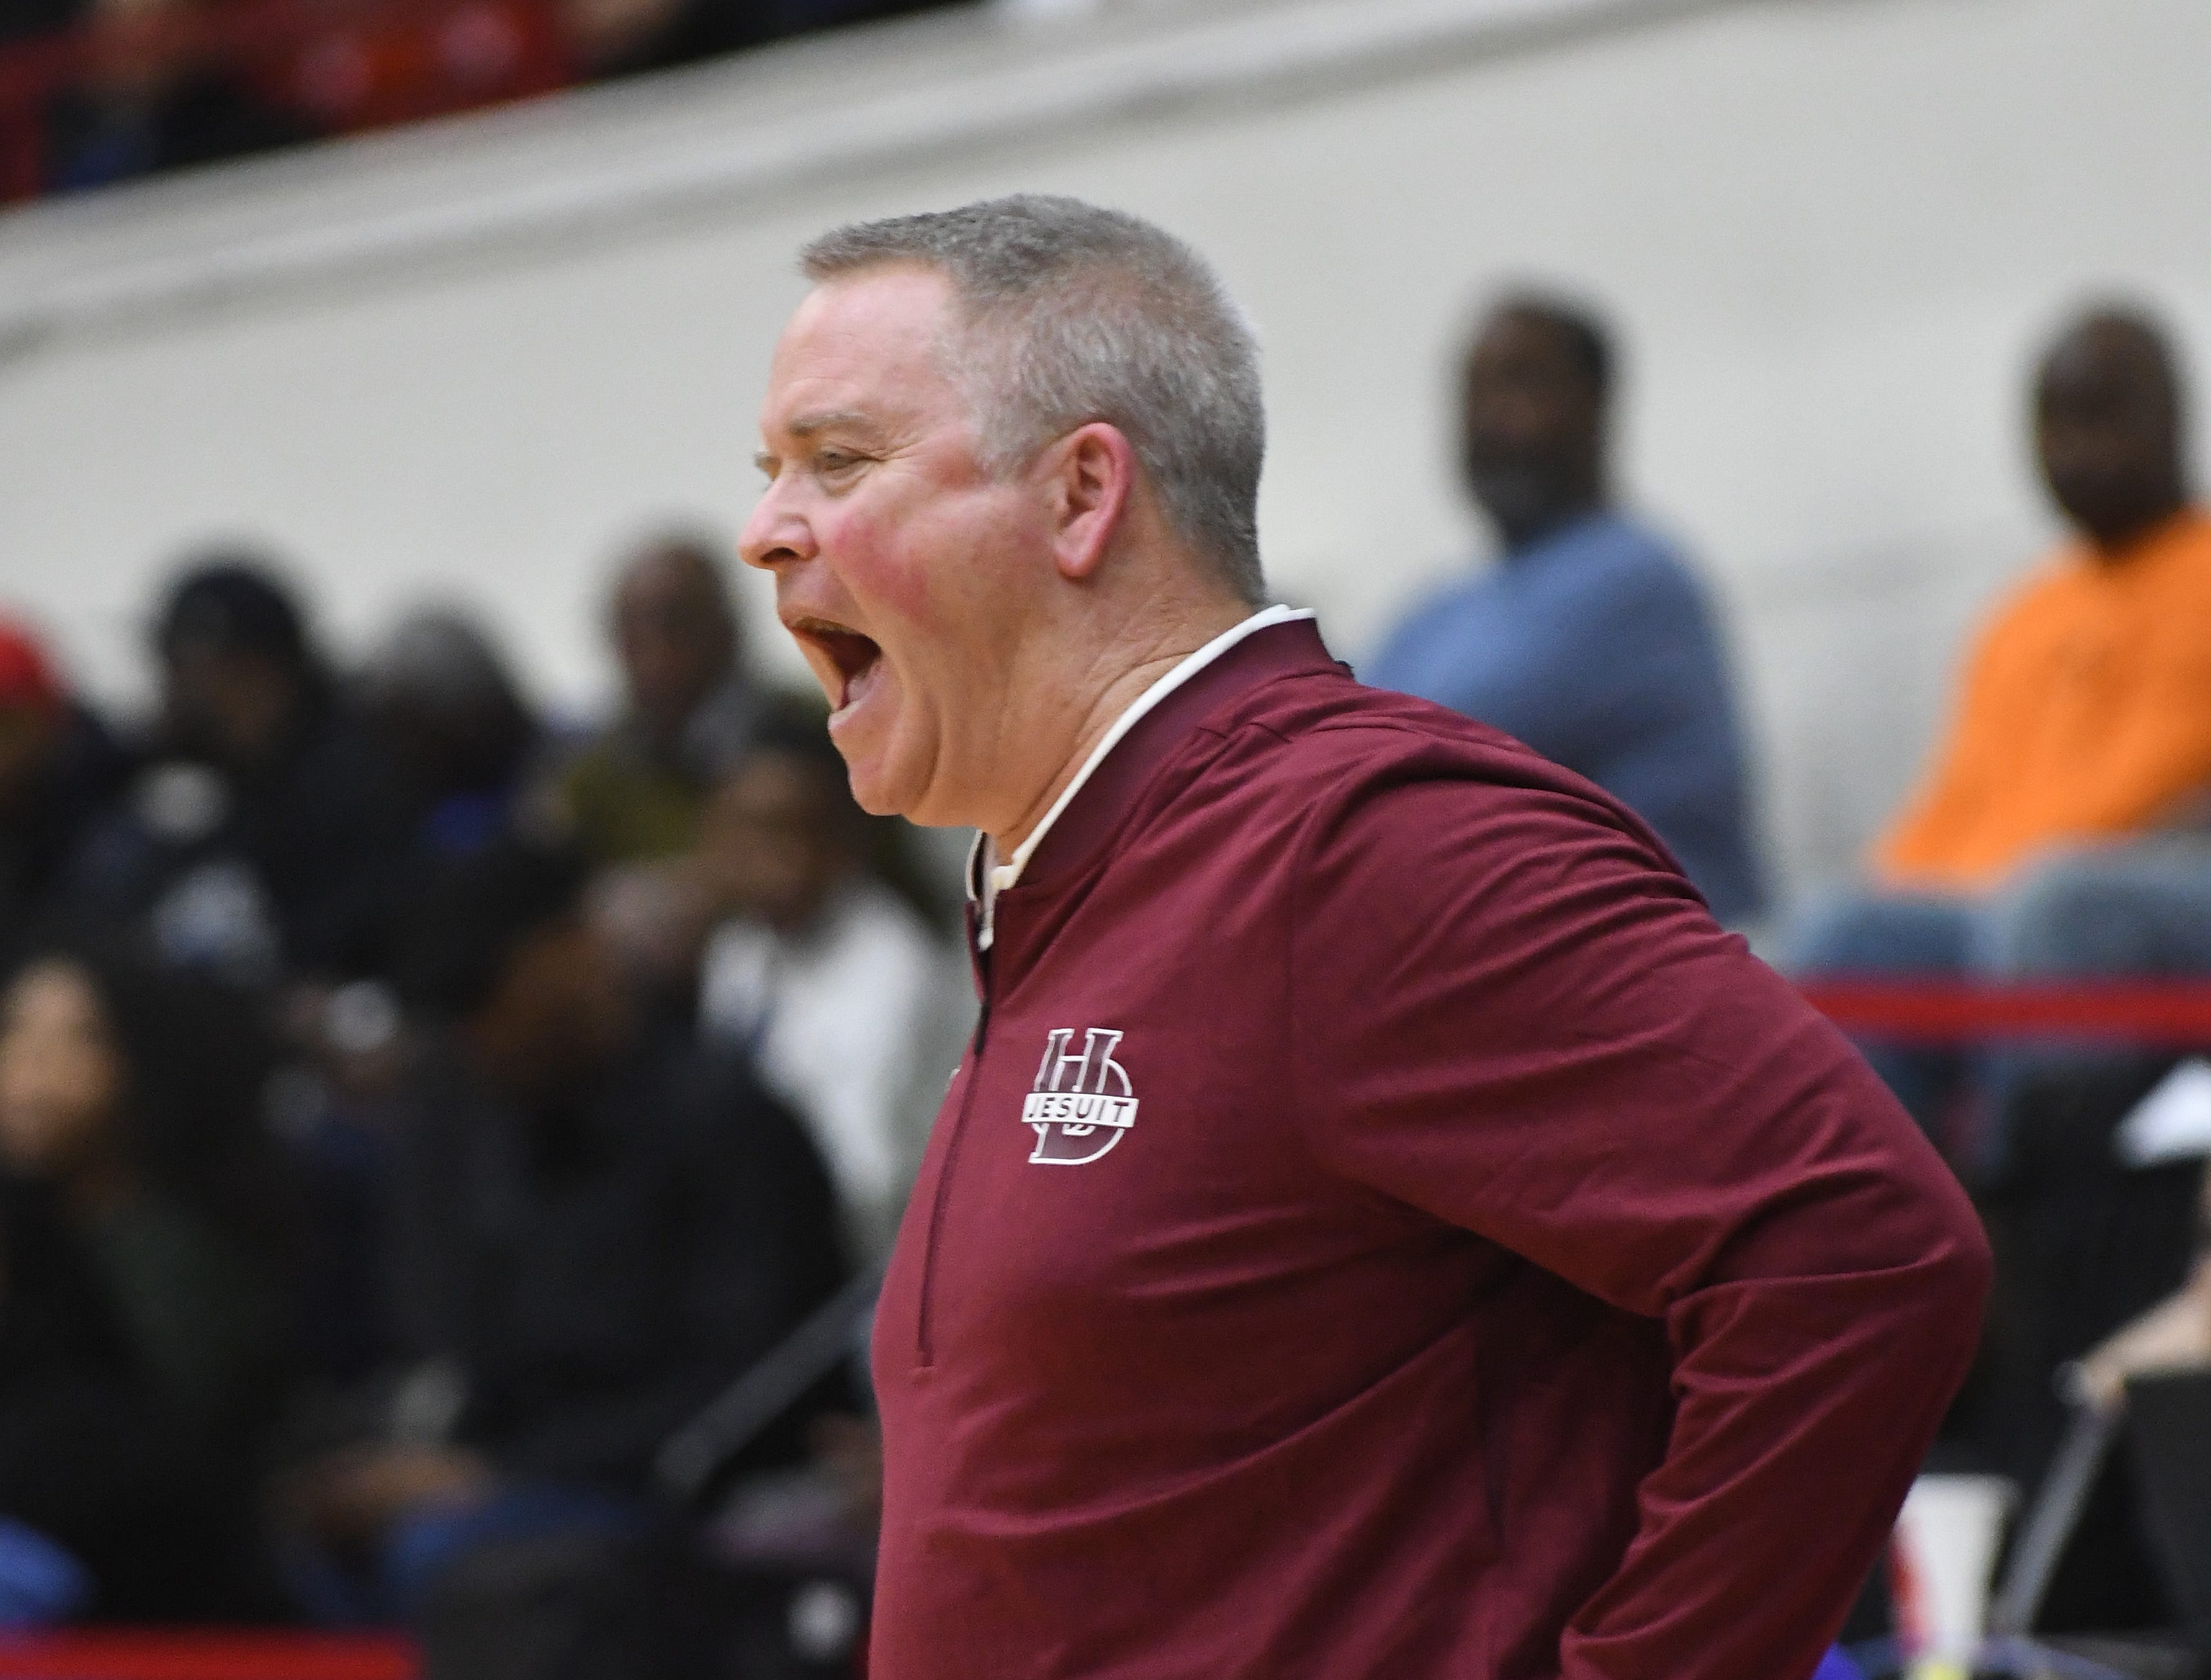 U of D Jesuit head coach Pat Donnelly yells out to his players in the first half.